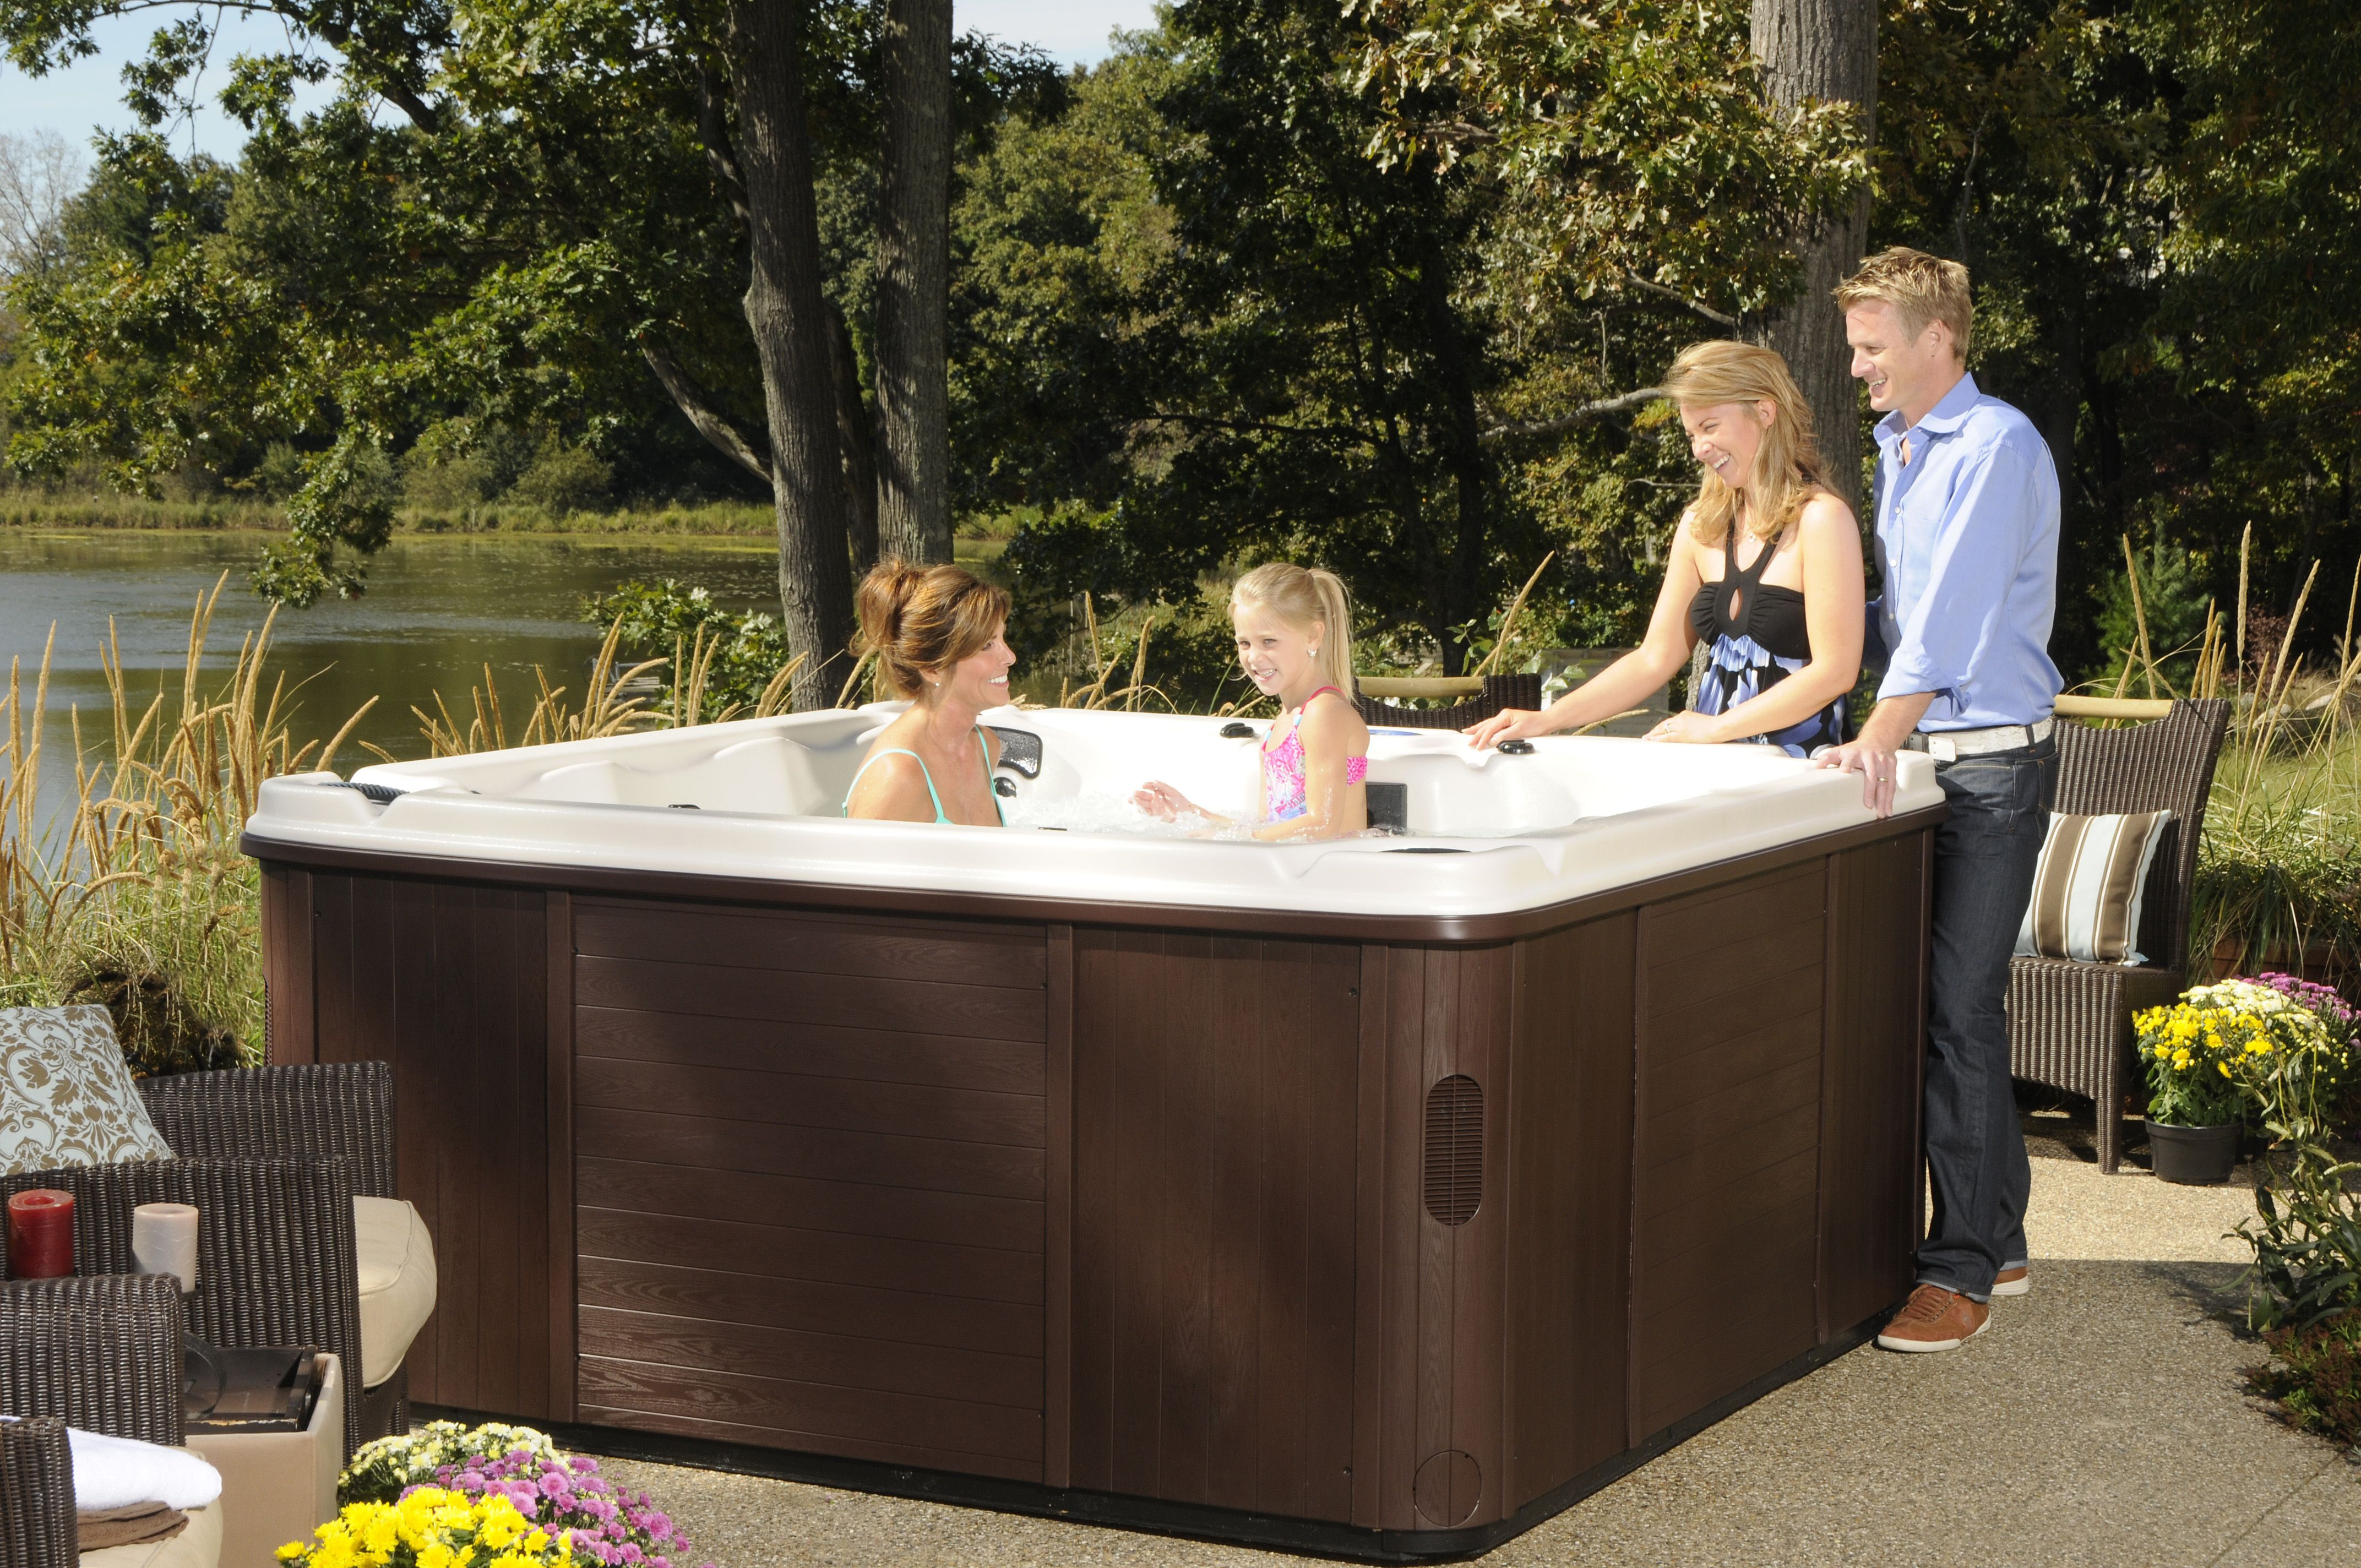 Family Time In A Hot Tub Creates A Place For Everyone To Spend